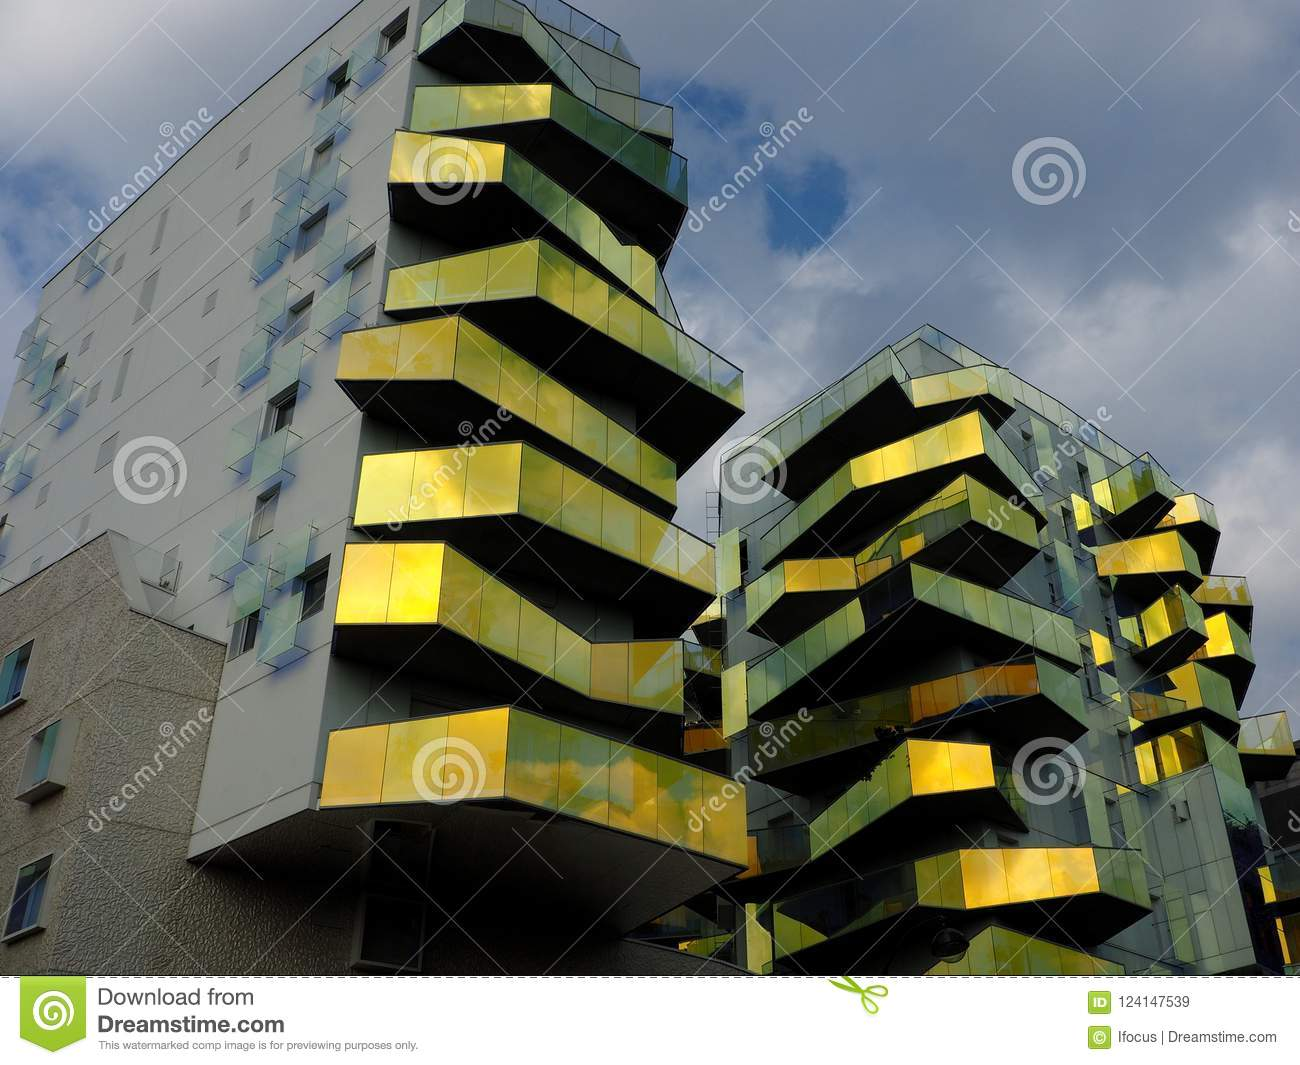 Bold Paris modern and bold construction in paris editorial stock image - image